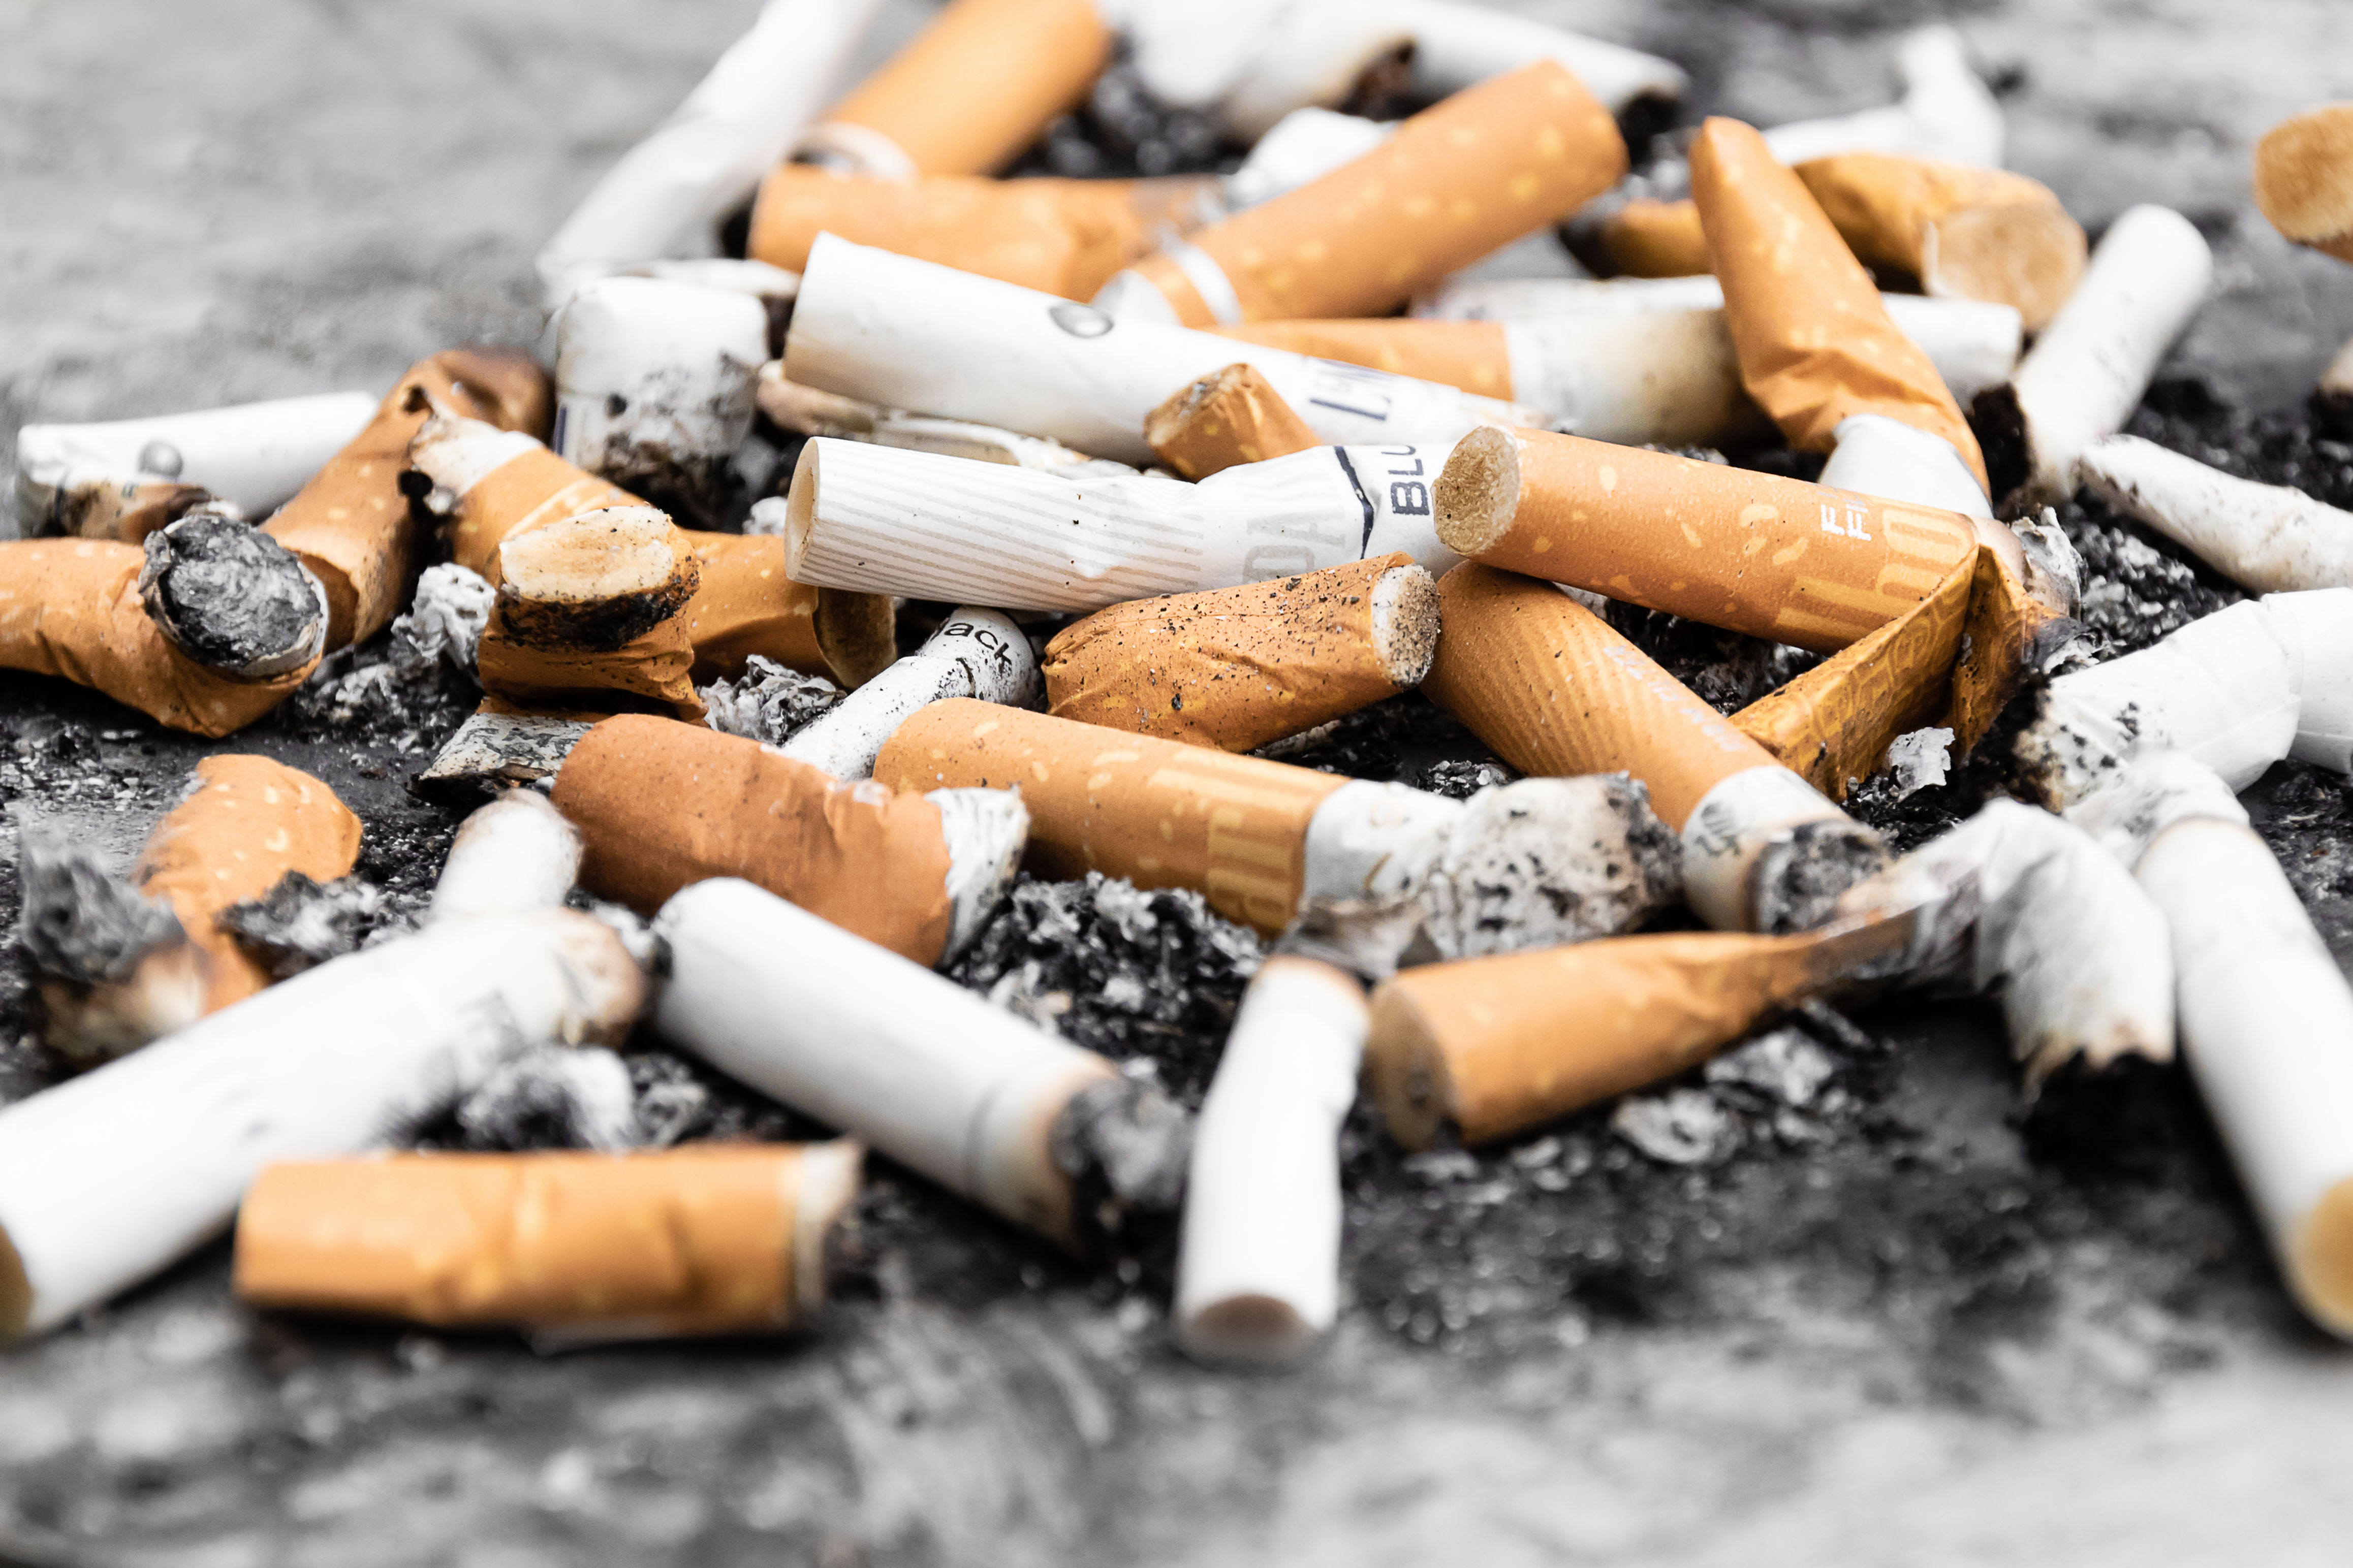 cigarette butts on highway